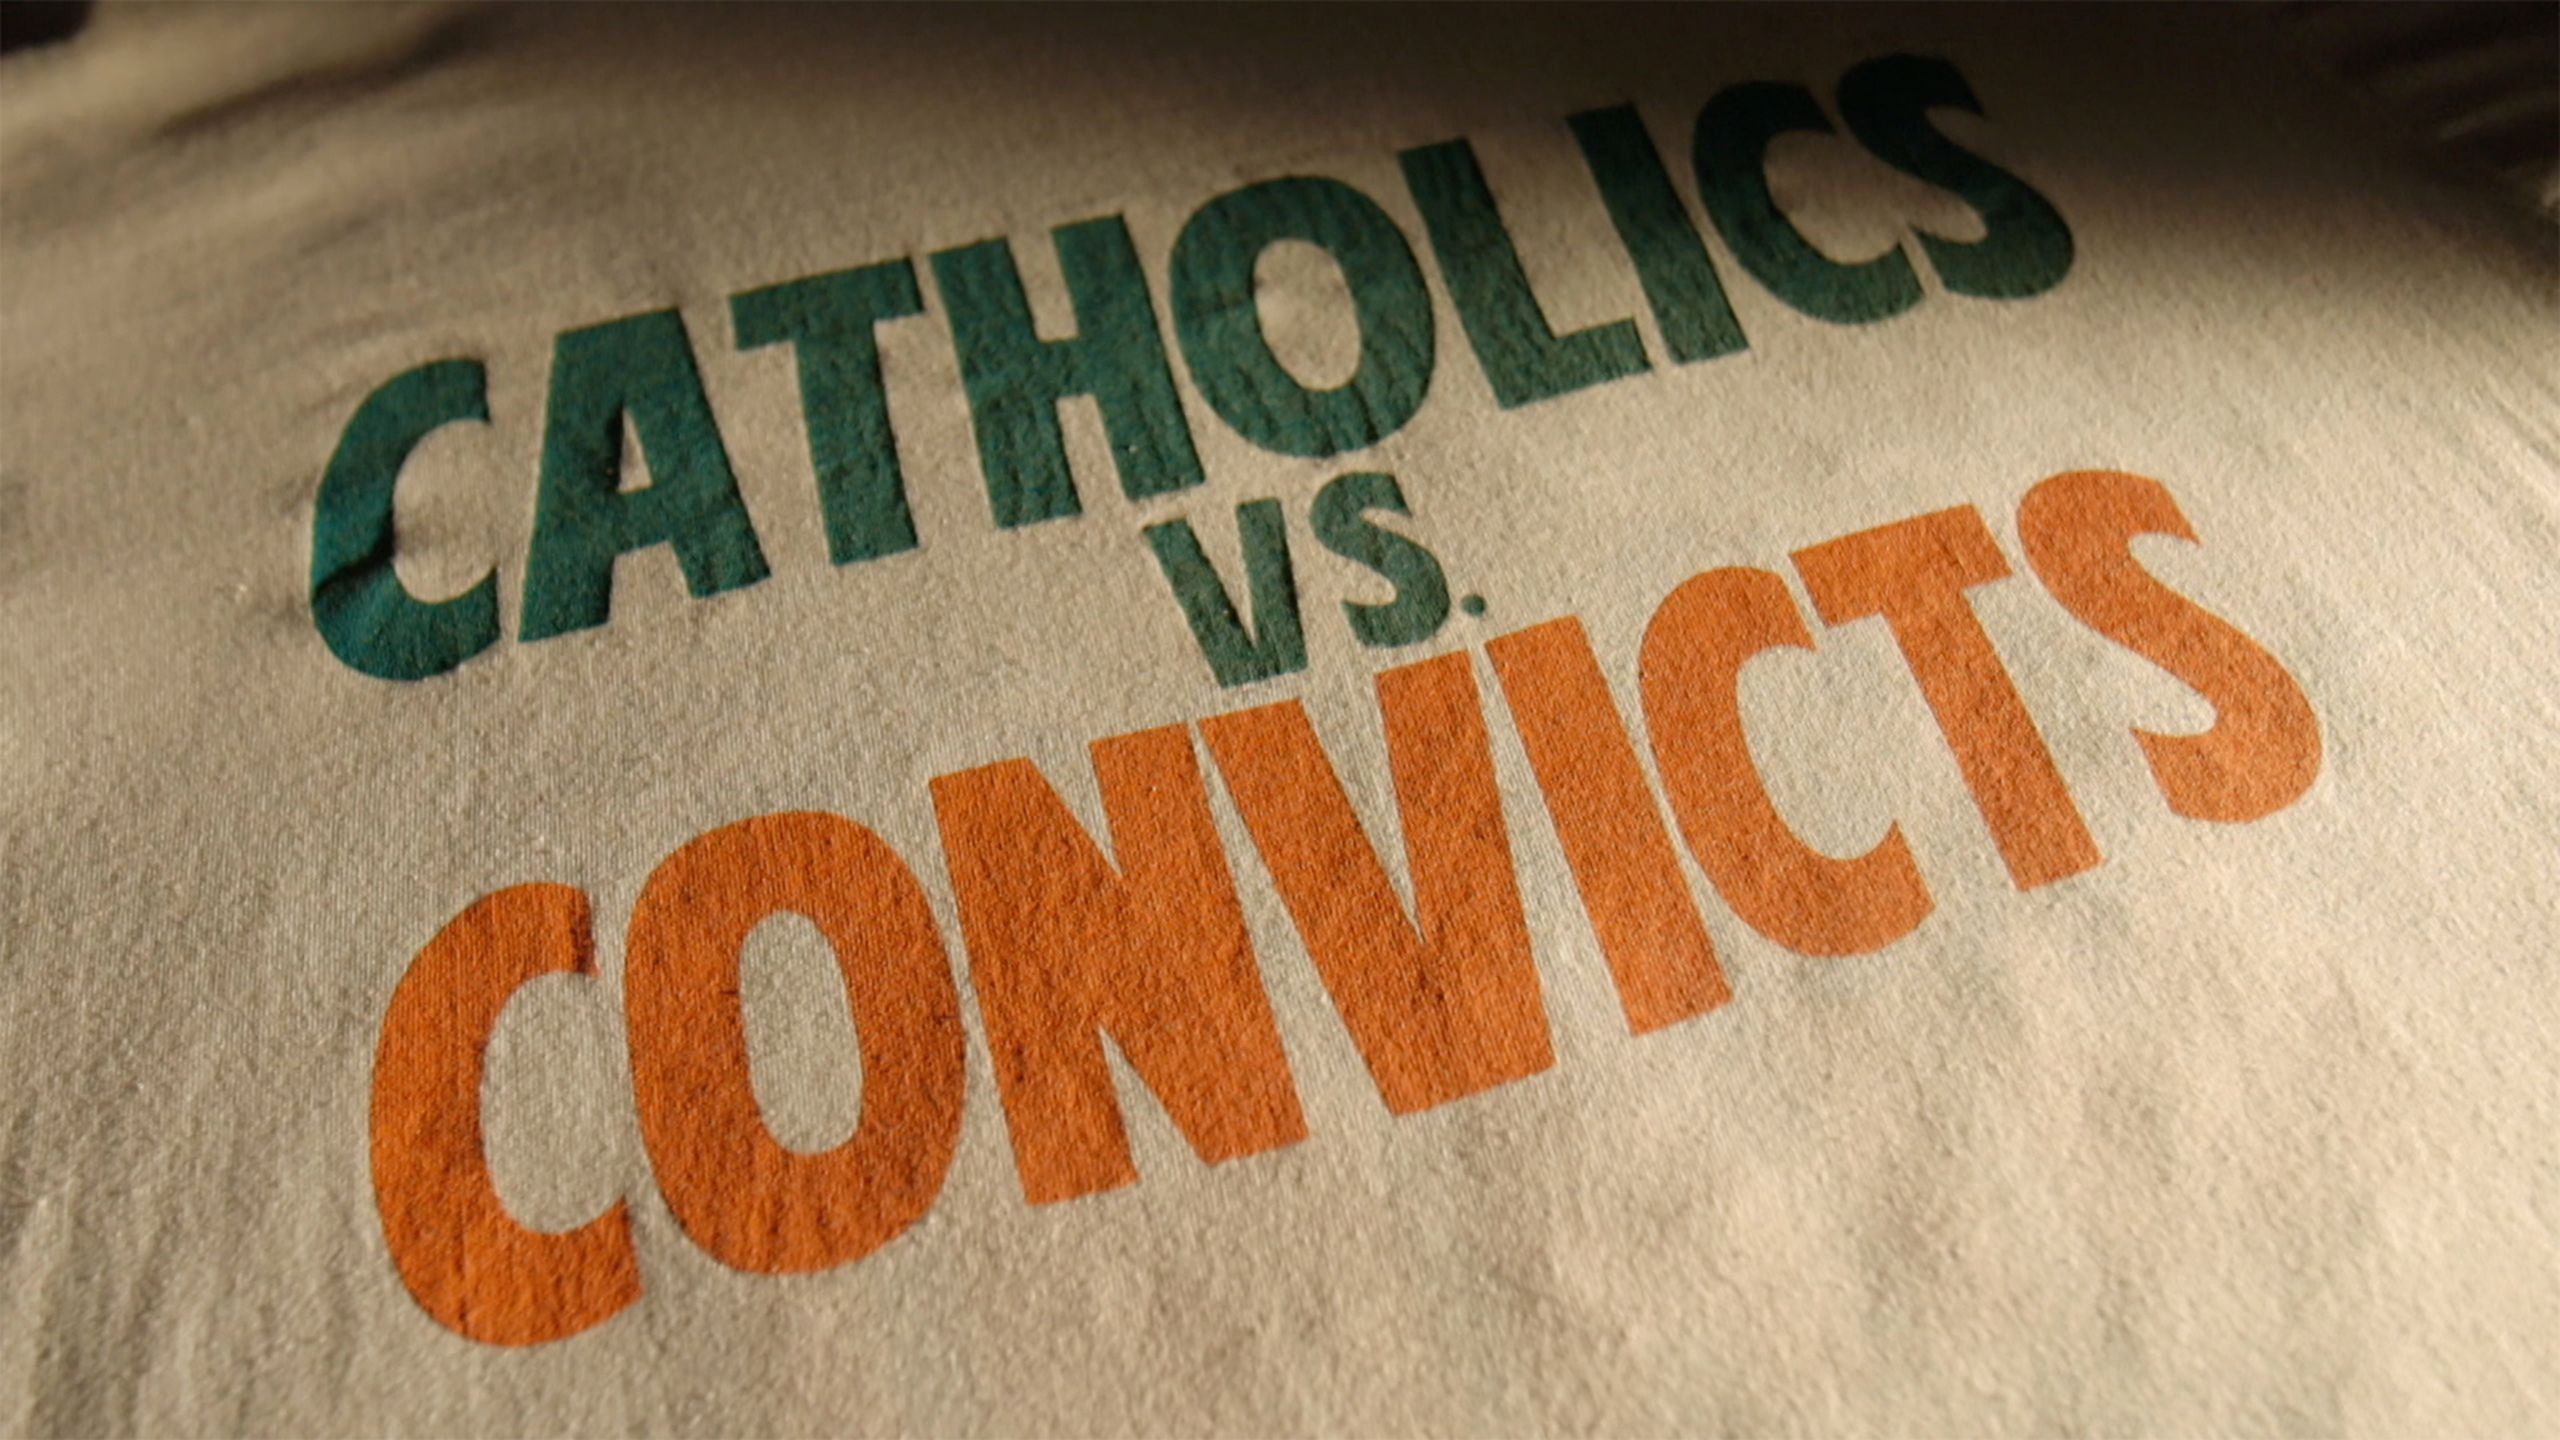 30 for 30: Catholics vs. Convicts